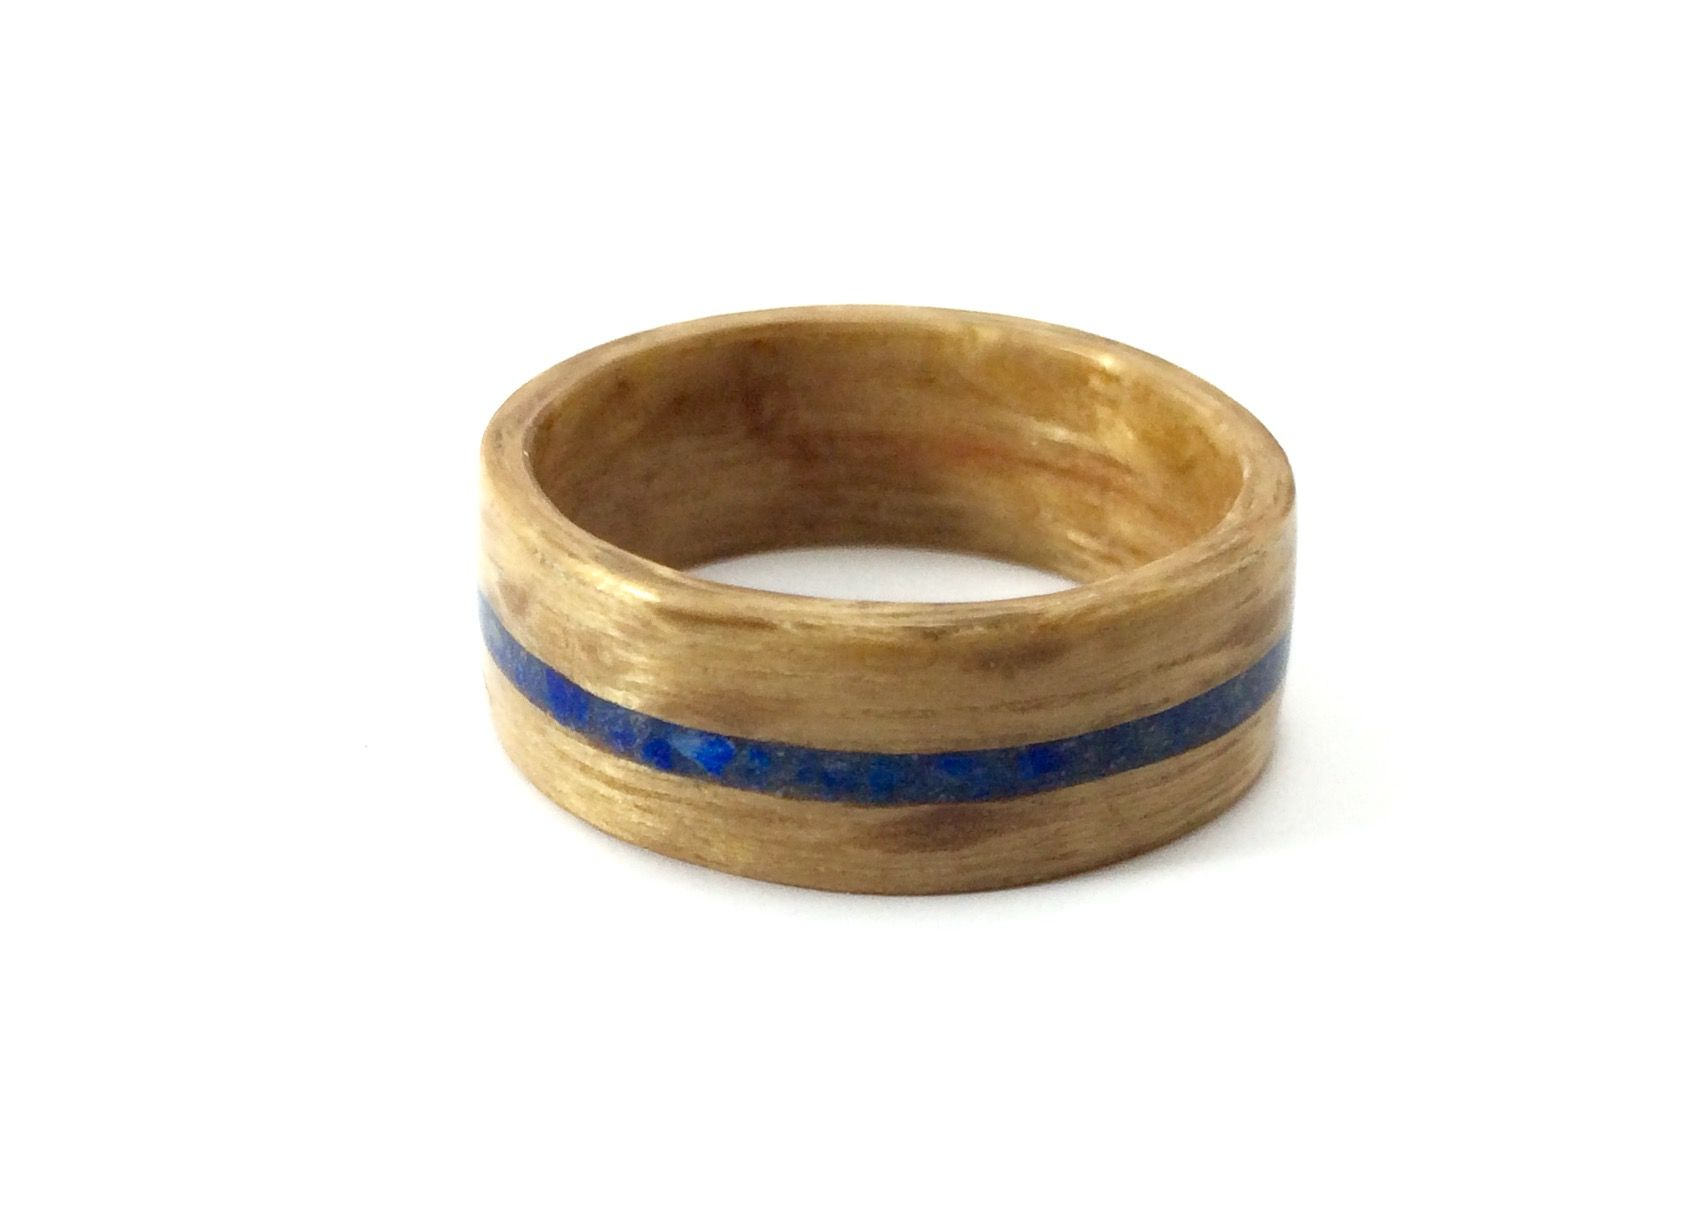 Lacewood bentwood ring with a lapis chip inlay